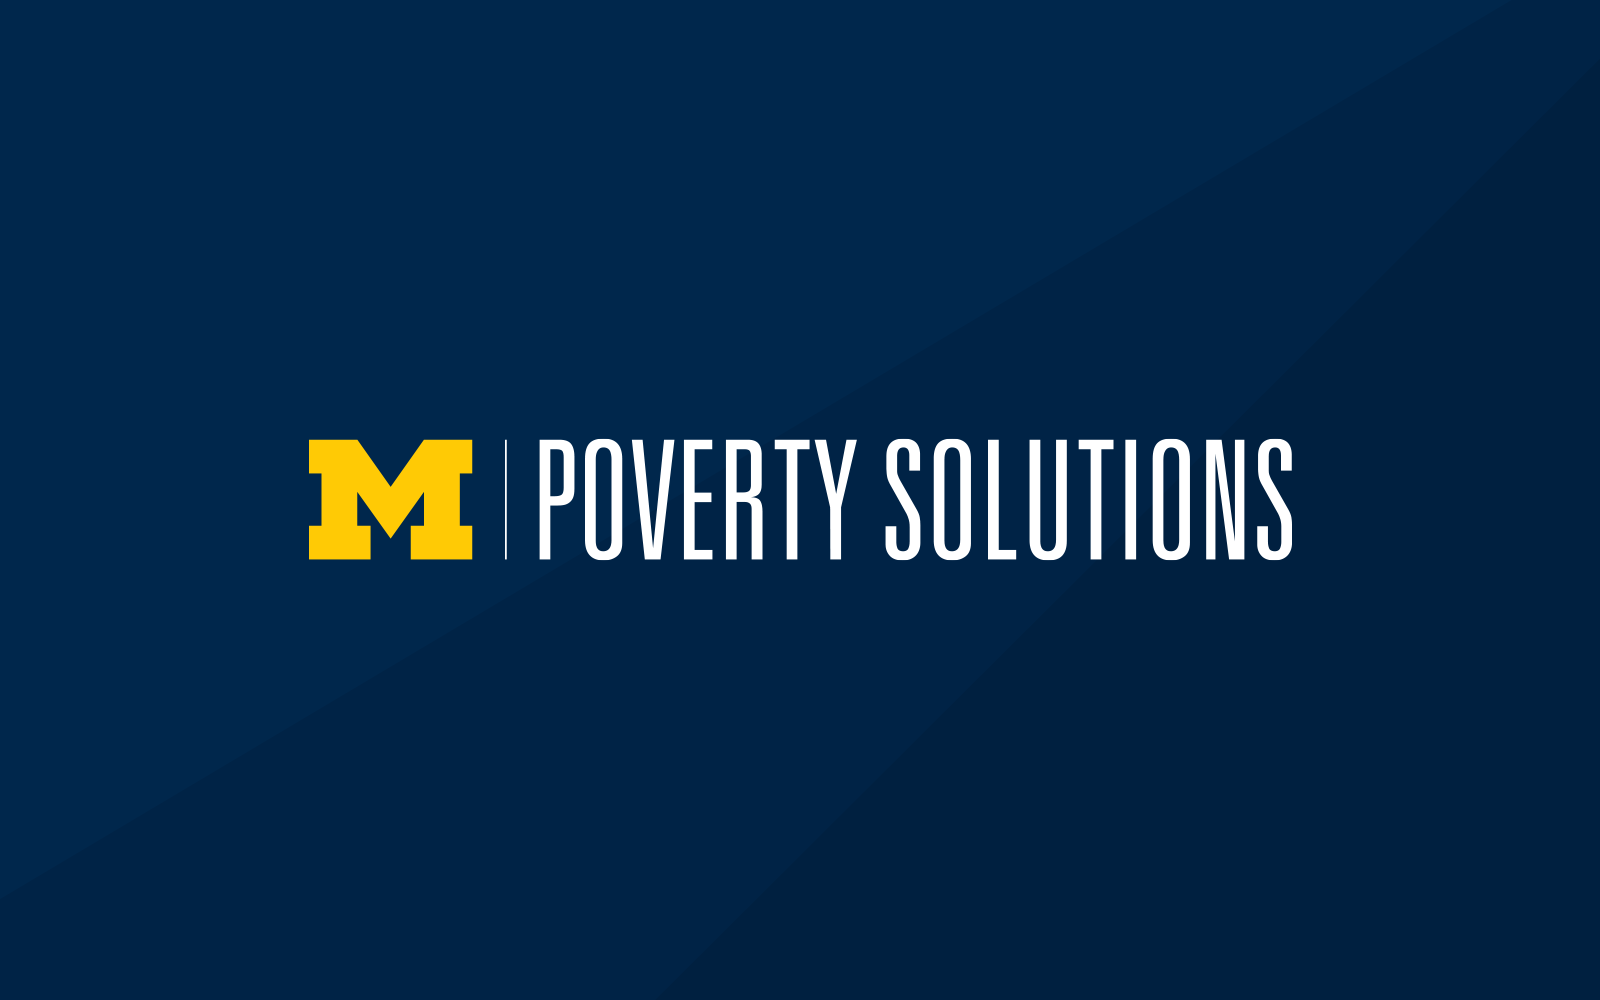 Poverty Solutions informal logo on a blue background